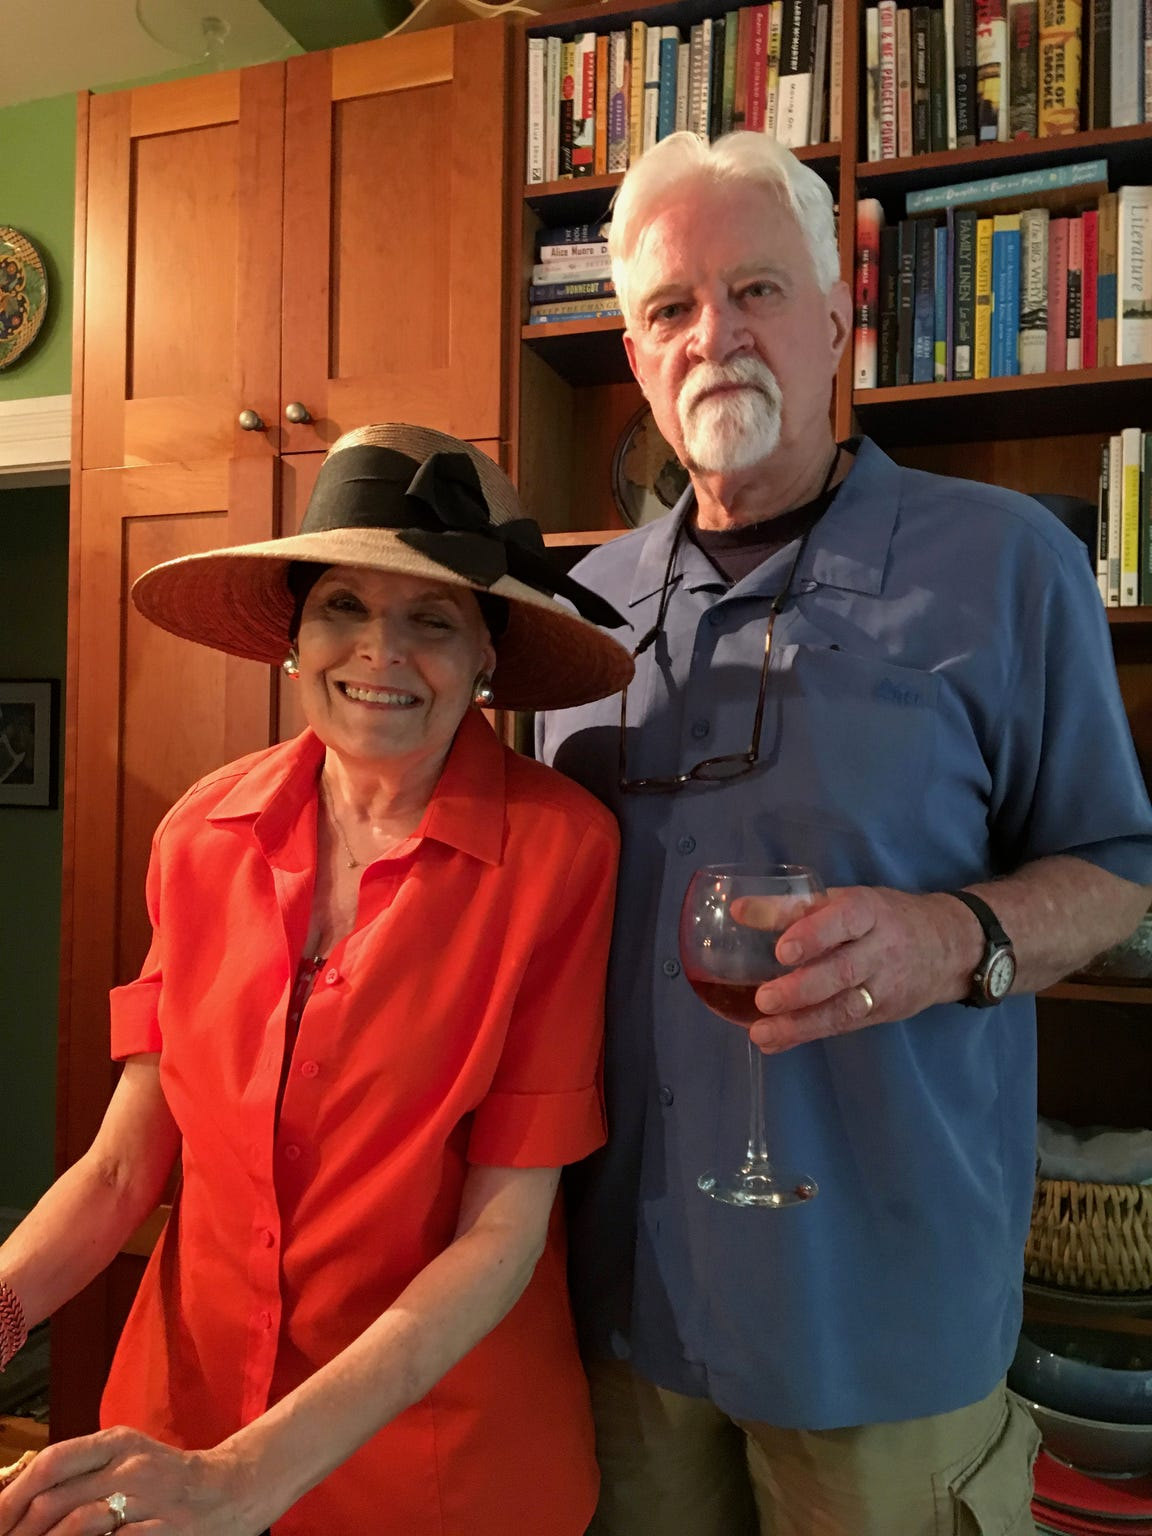 Rabbi Lynne Landsberg with her husband Dennis Ward on July 21, 2017, Landsberg's 66th birthday.